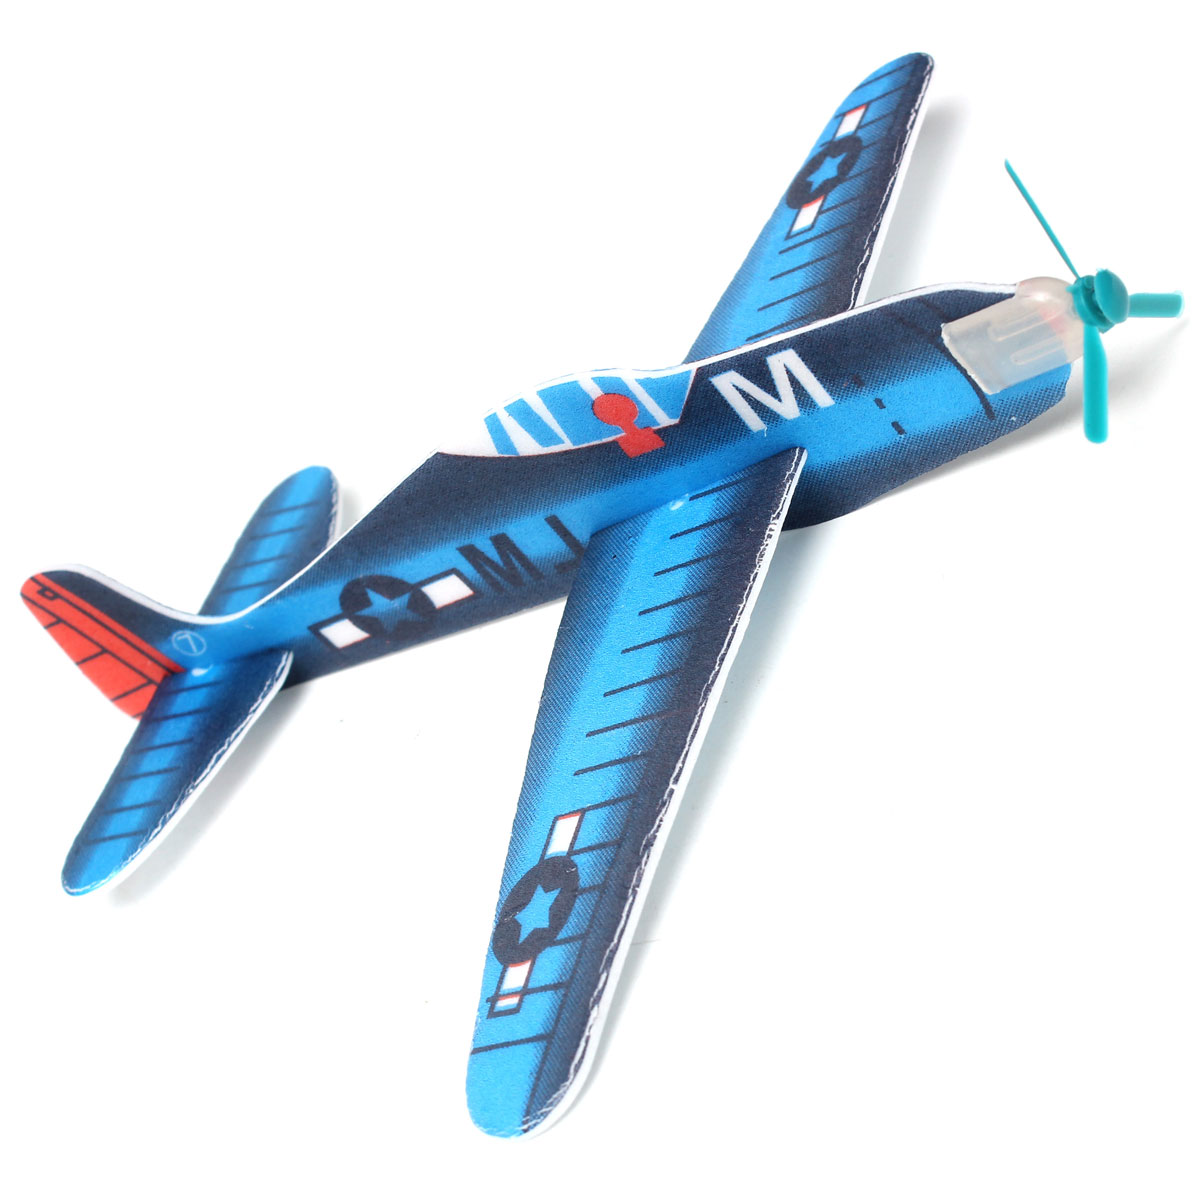 10Pcs Banggood Flying Glider Plane Toy Gift Birthday Christmas Party Bag Filler